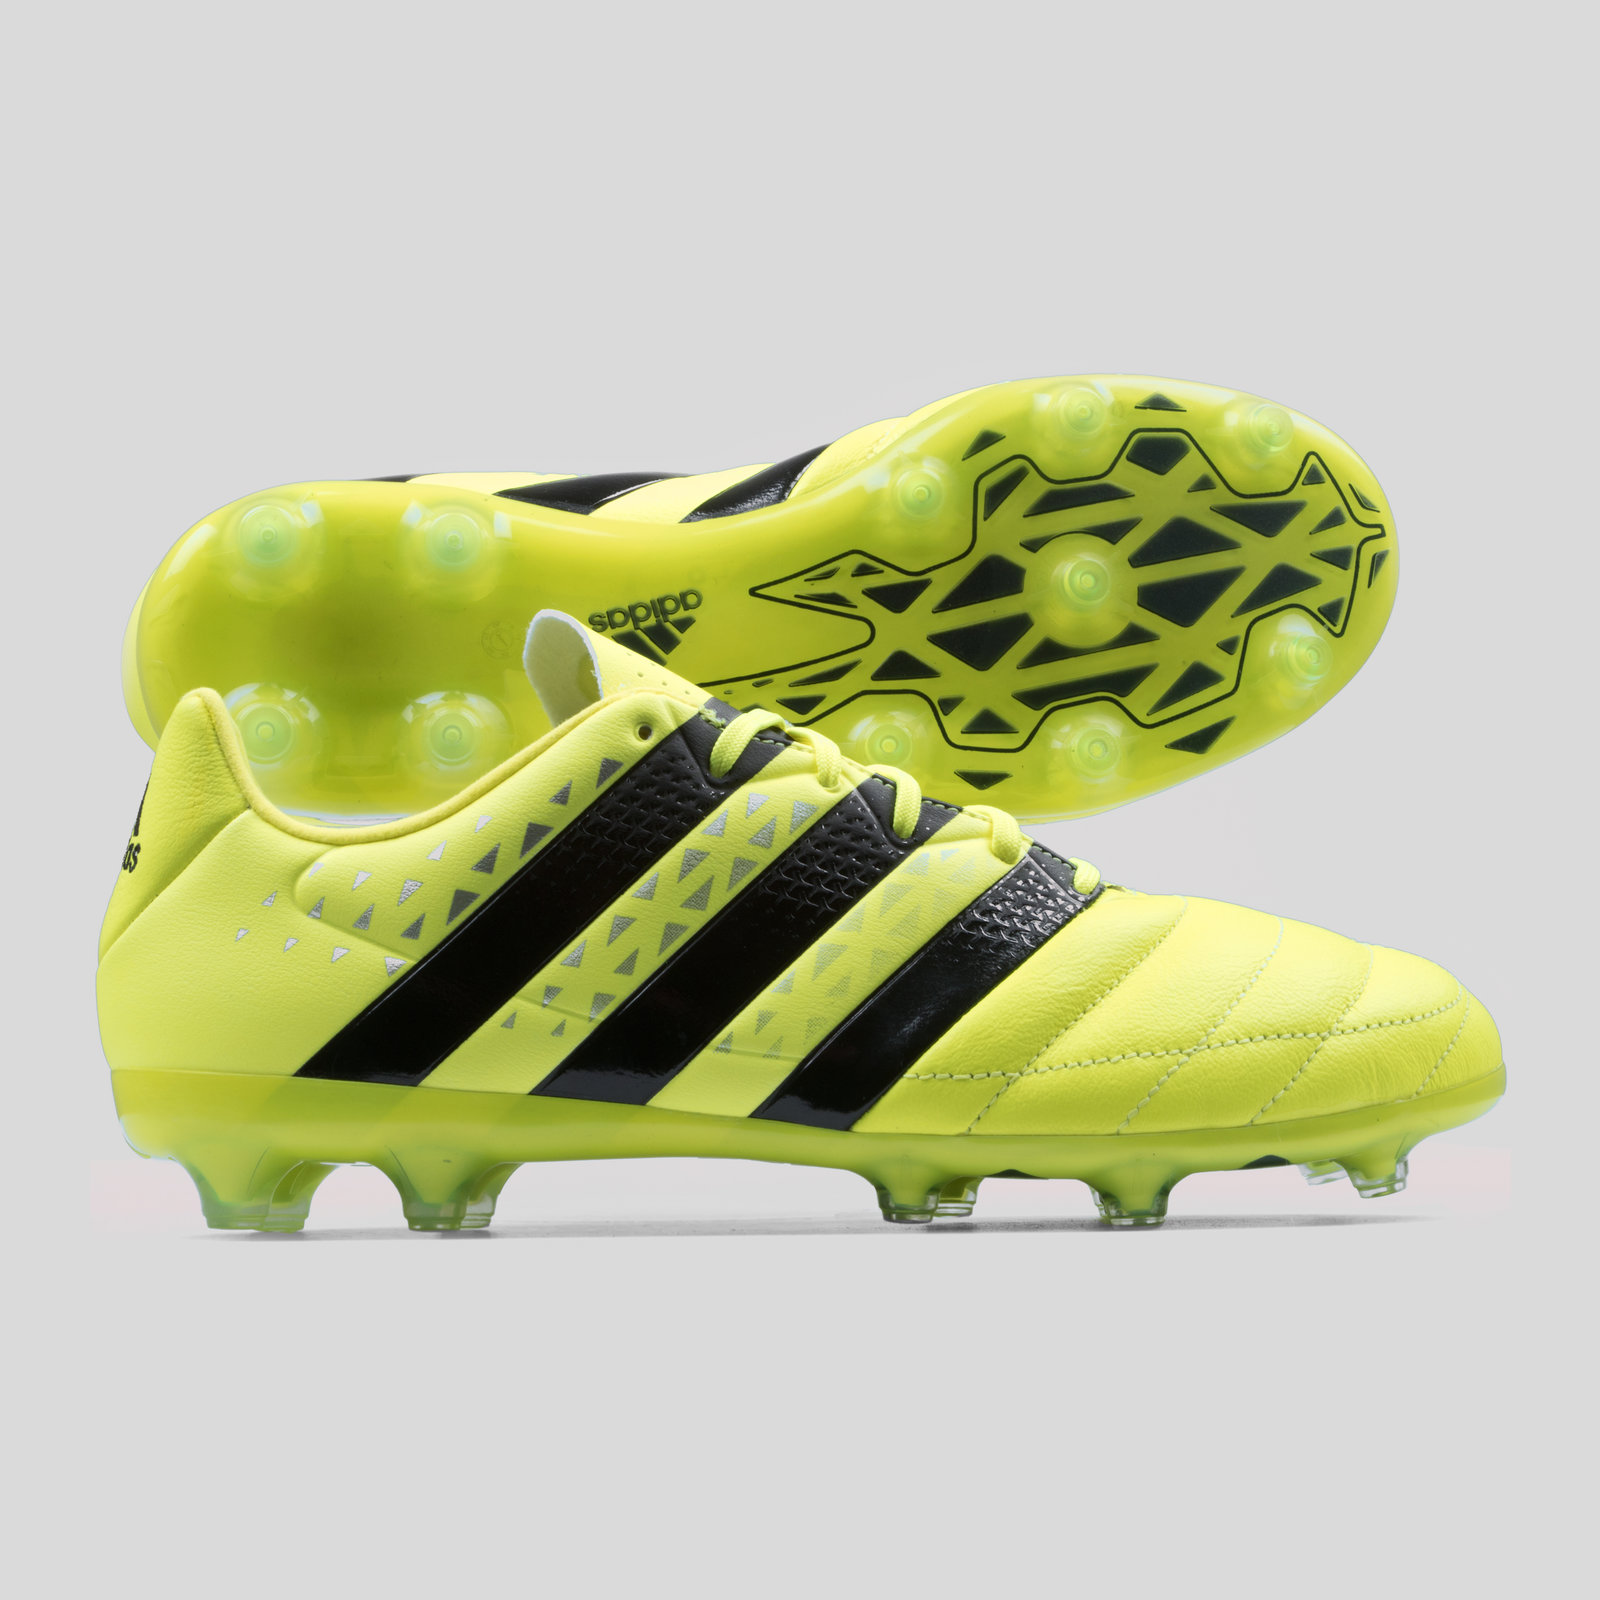 Image of Ace 16.2 Leather FG Football Boots